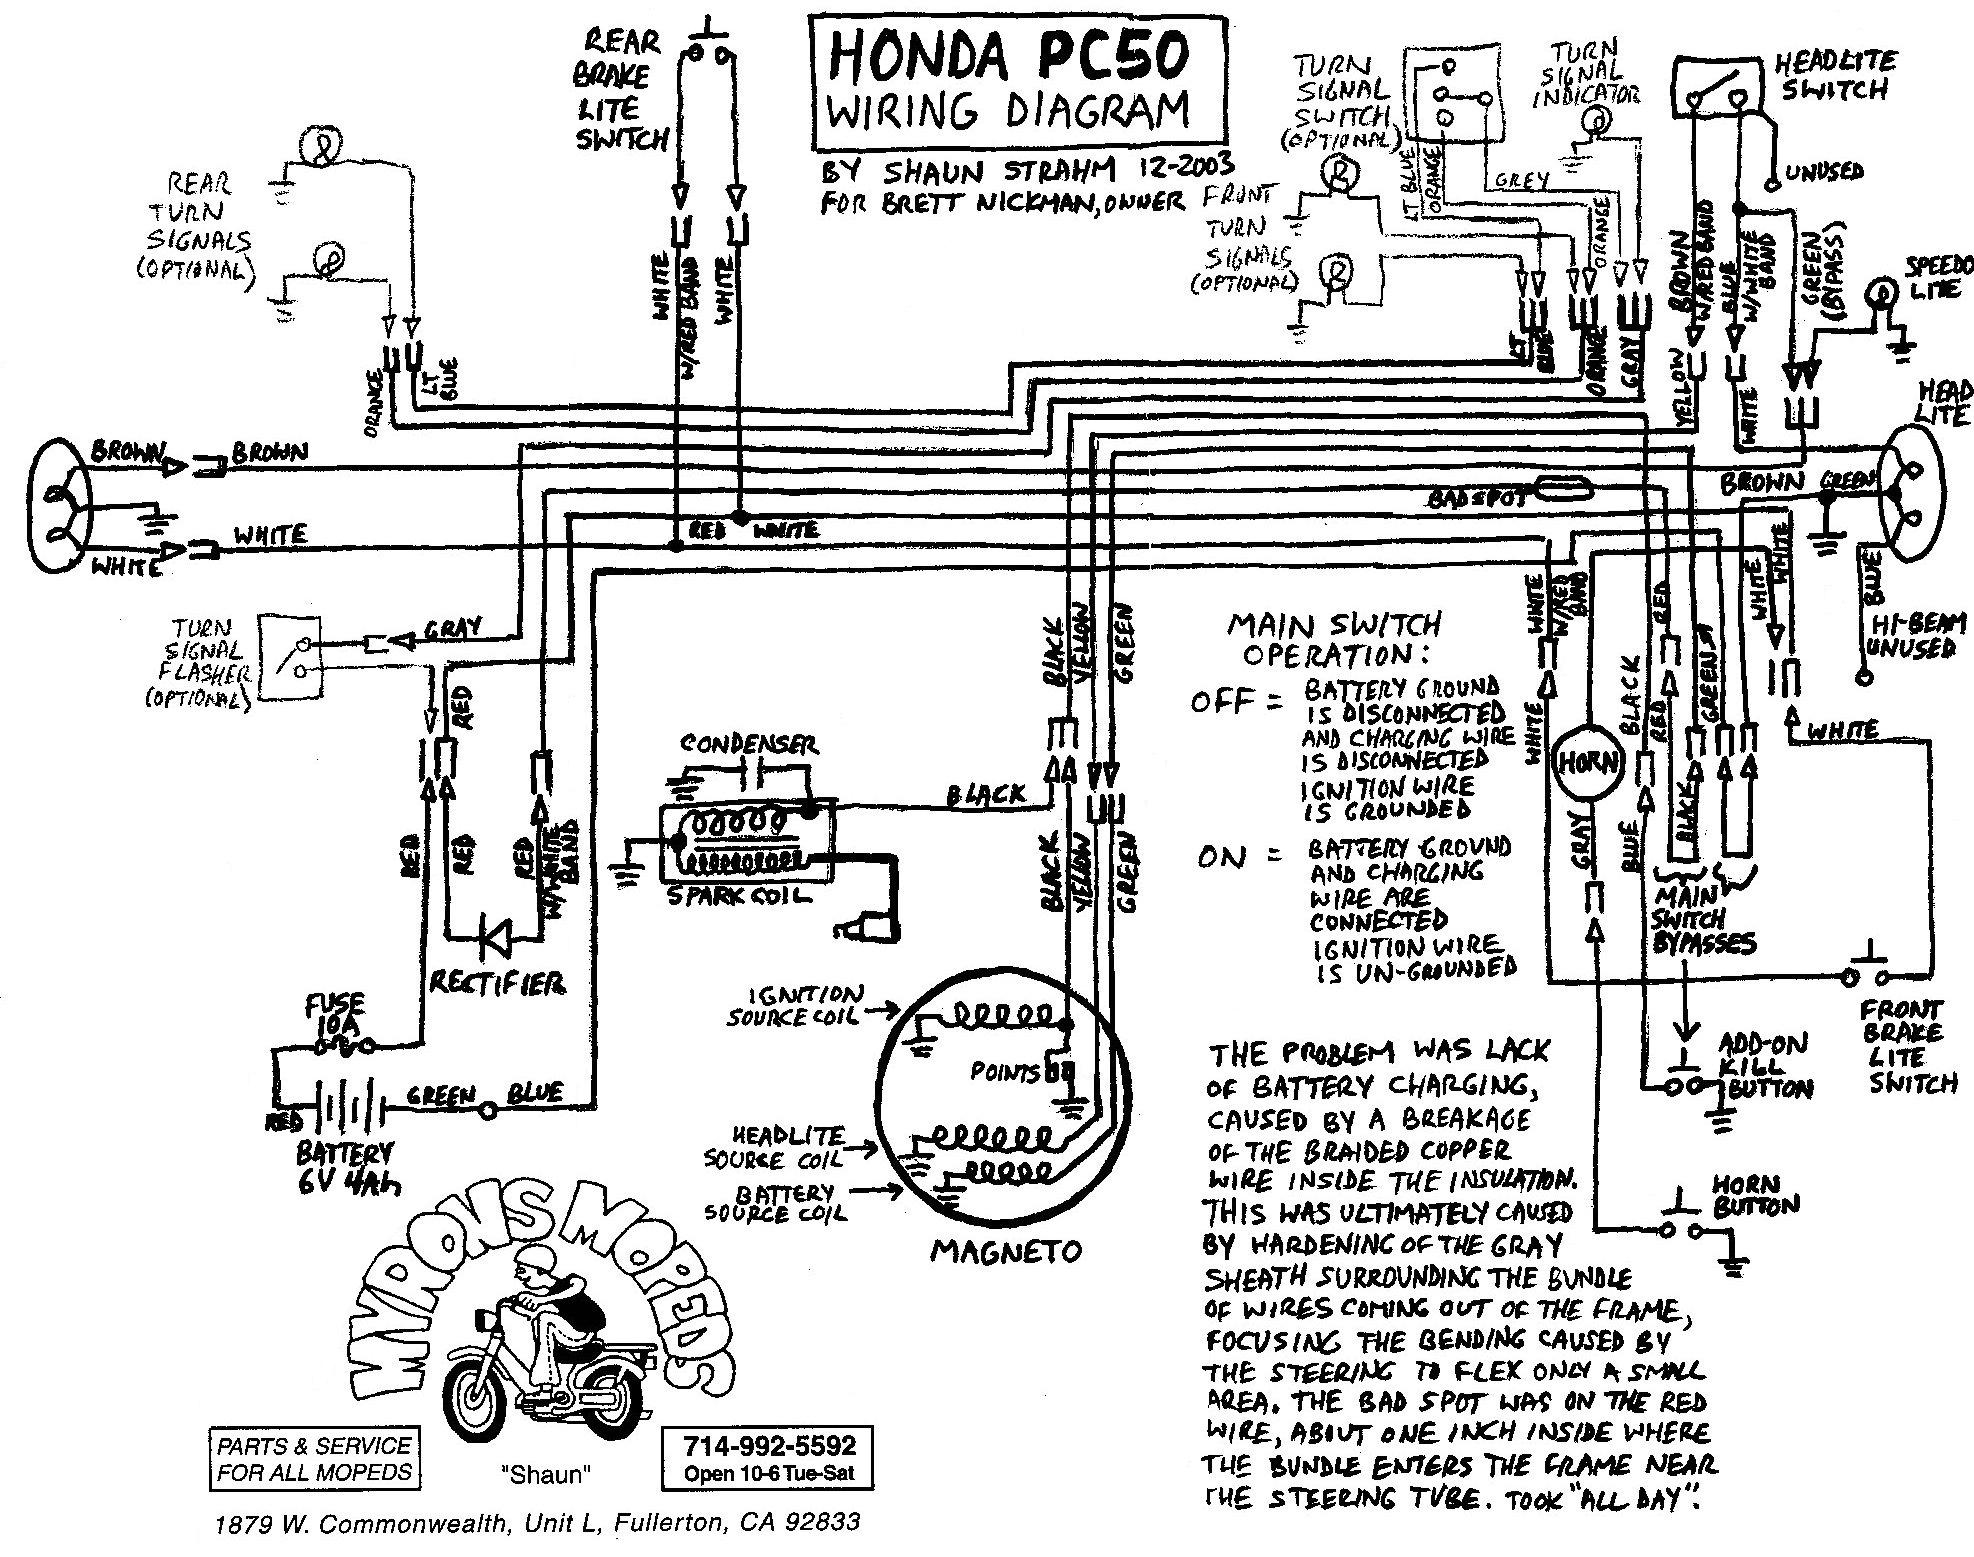 R3009 Honda Ignition Switch Wiring Diagram